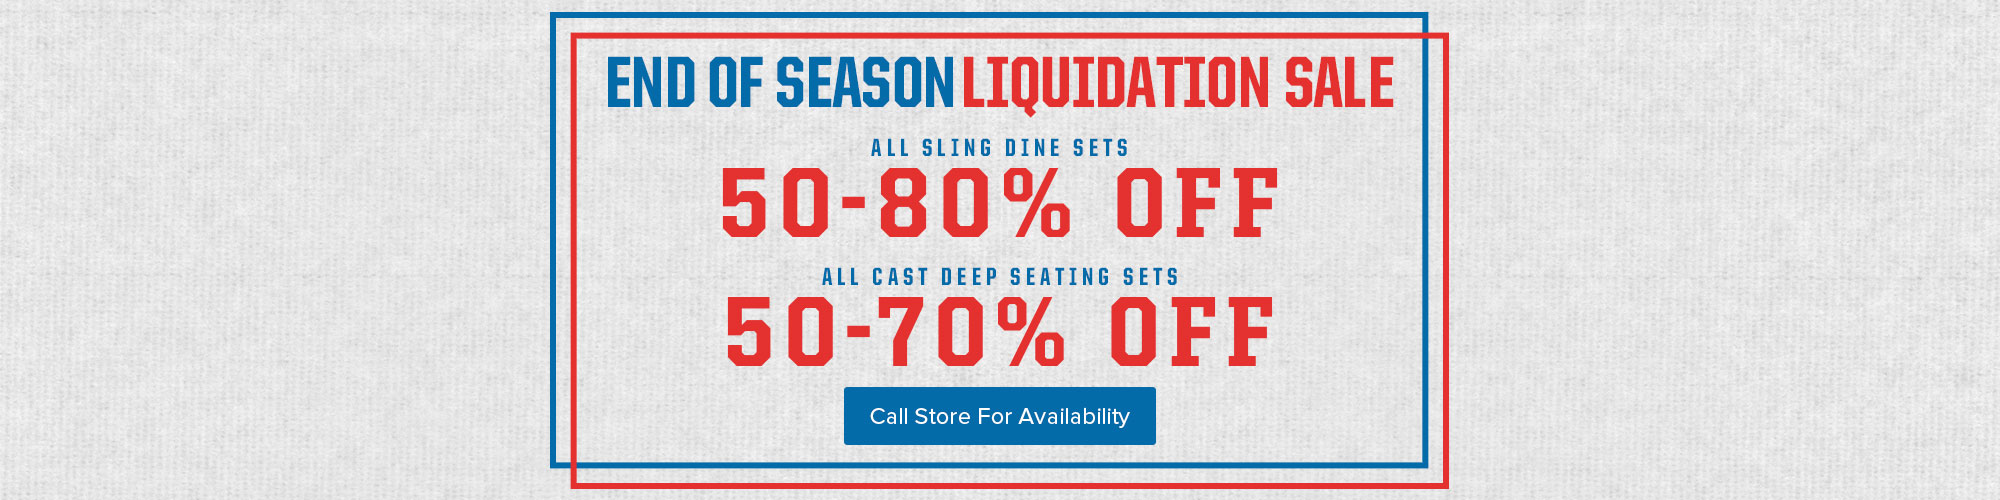 End of Season Liquidation Sale  - All Sing Dine Sets 50 - 80% Off. All Cast Deep Seating Sets 50 - 70% Off.